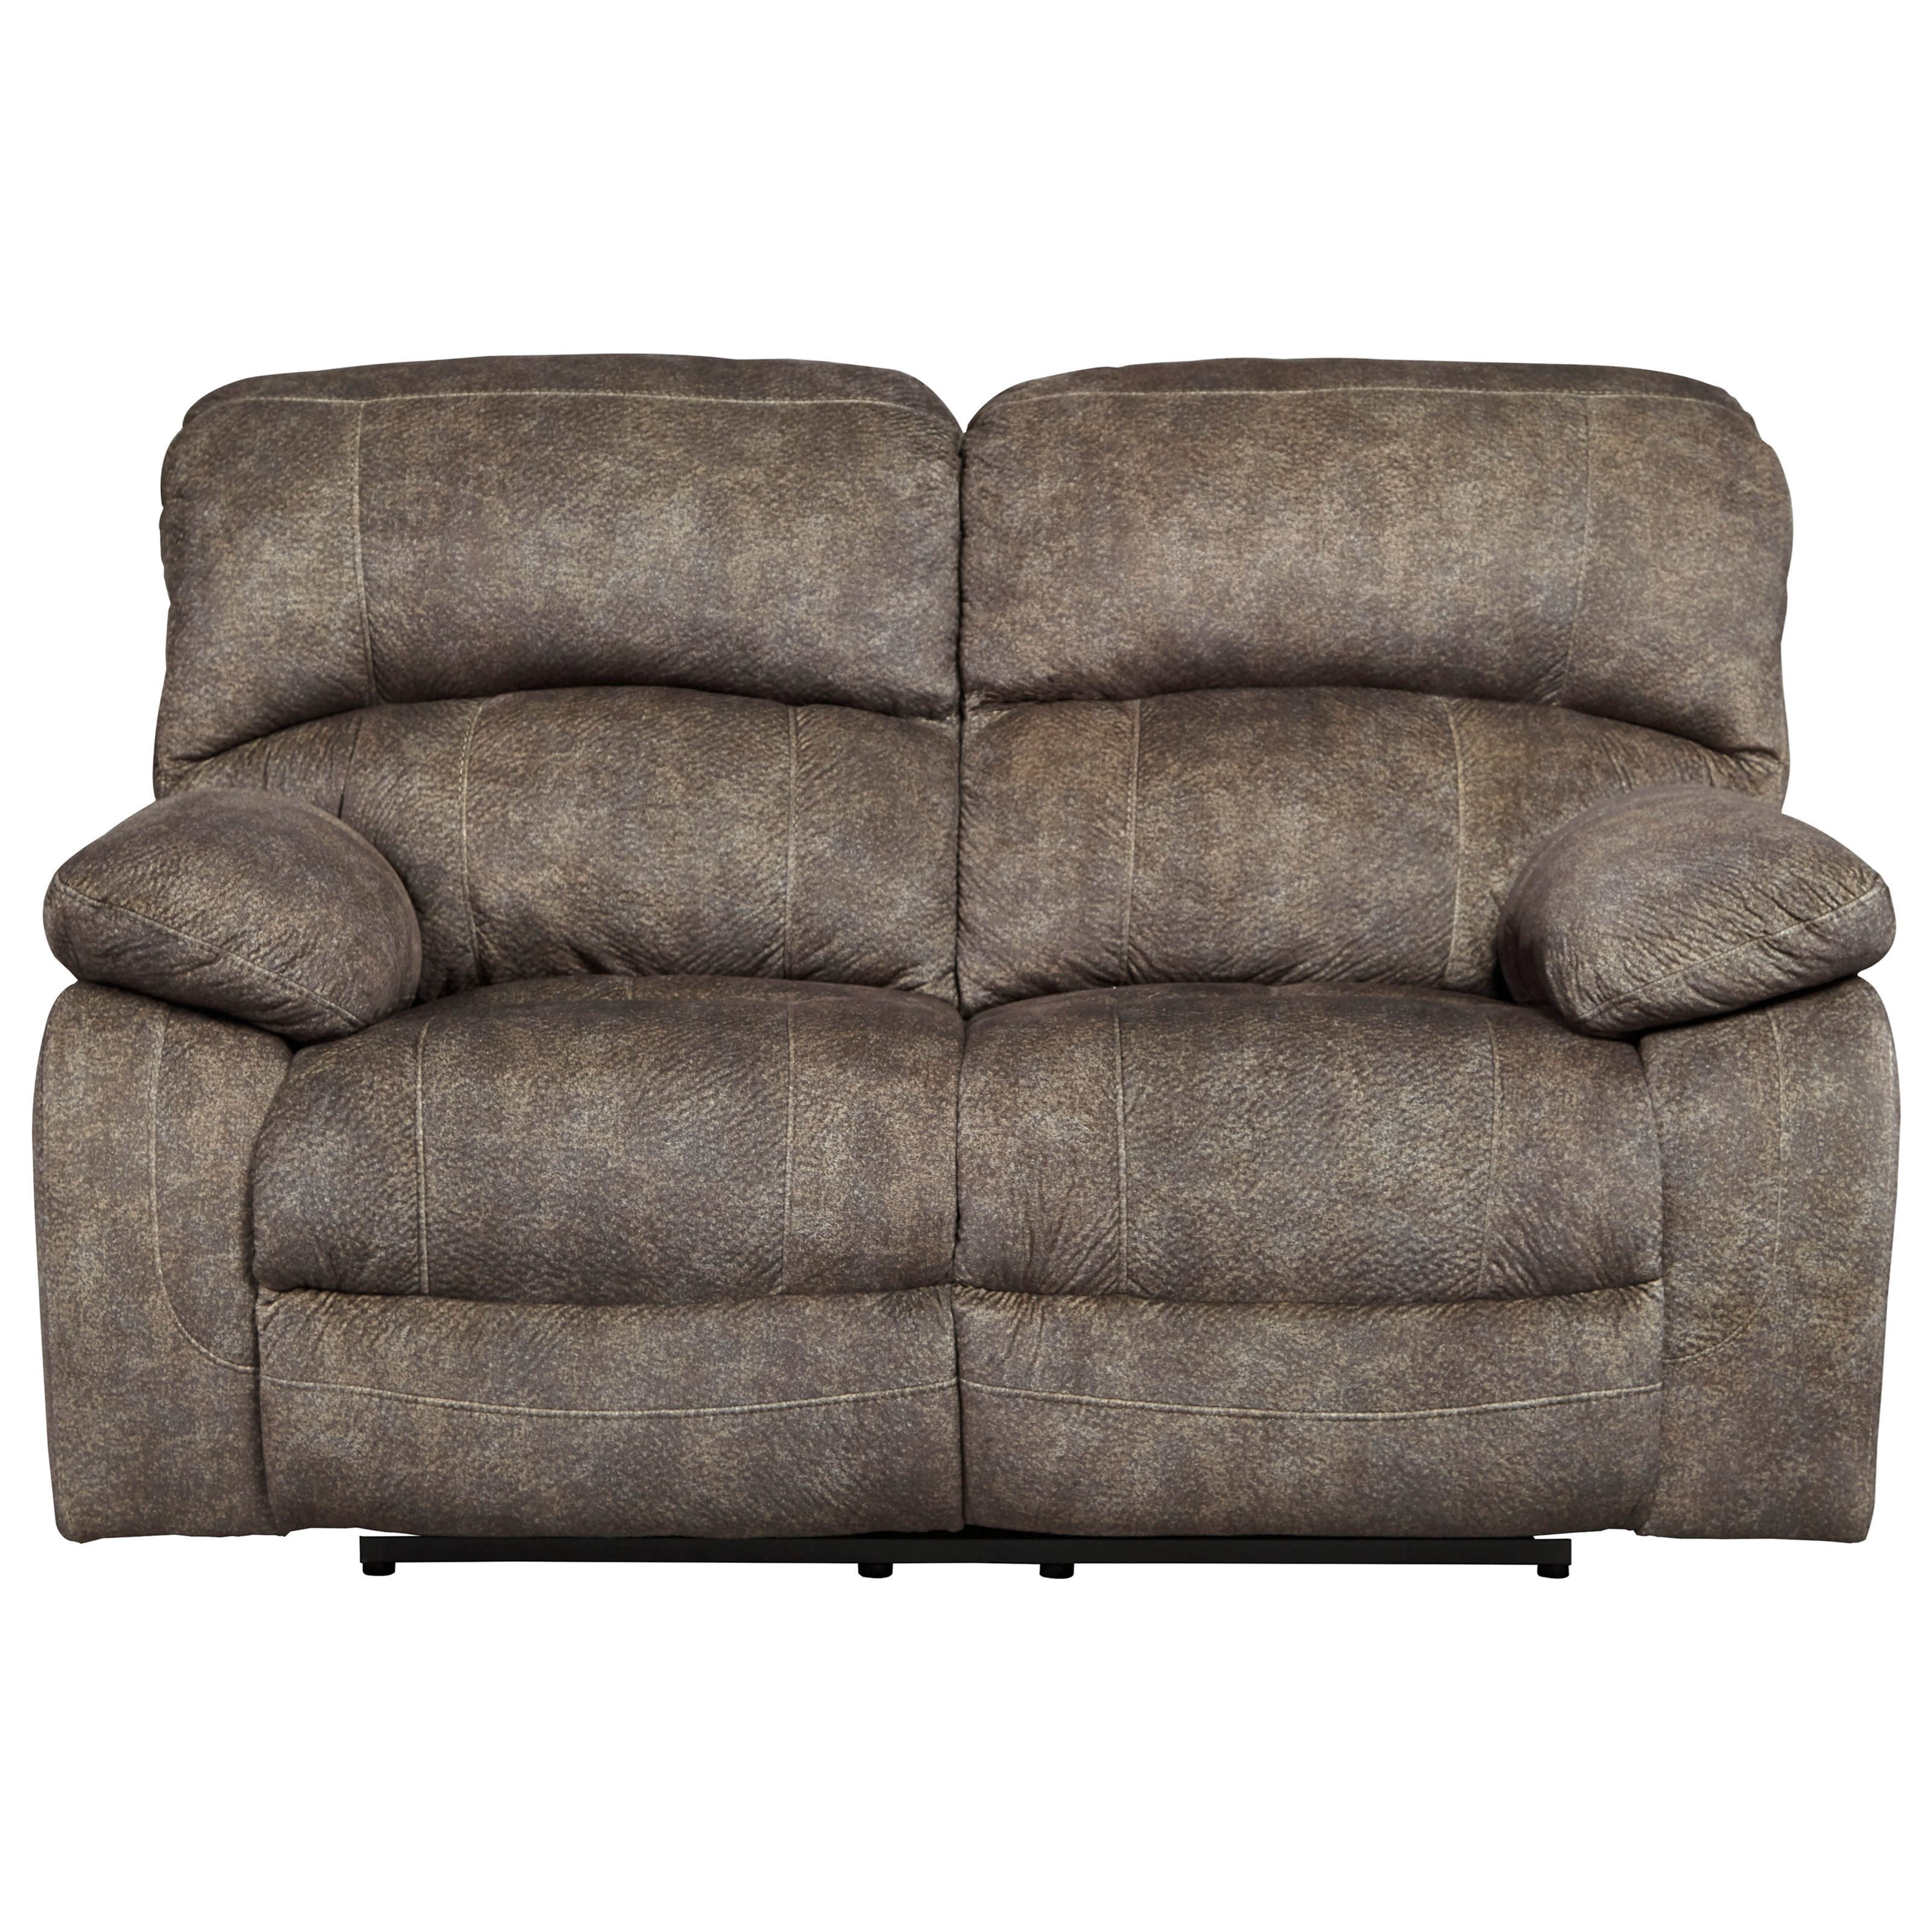 Signature Design by Ashley Cannelton Power Reclining Loveseat - Item Number: 1830314